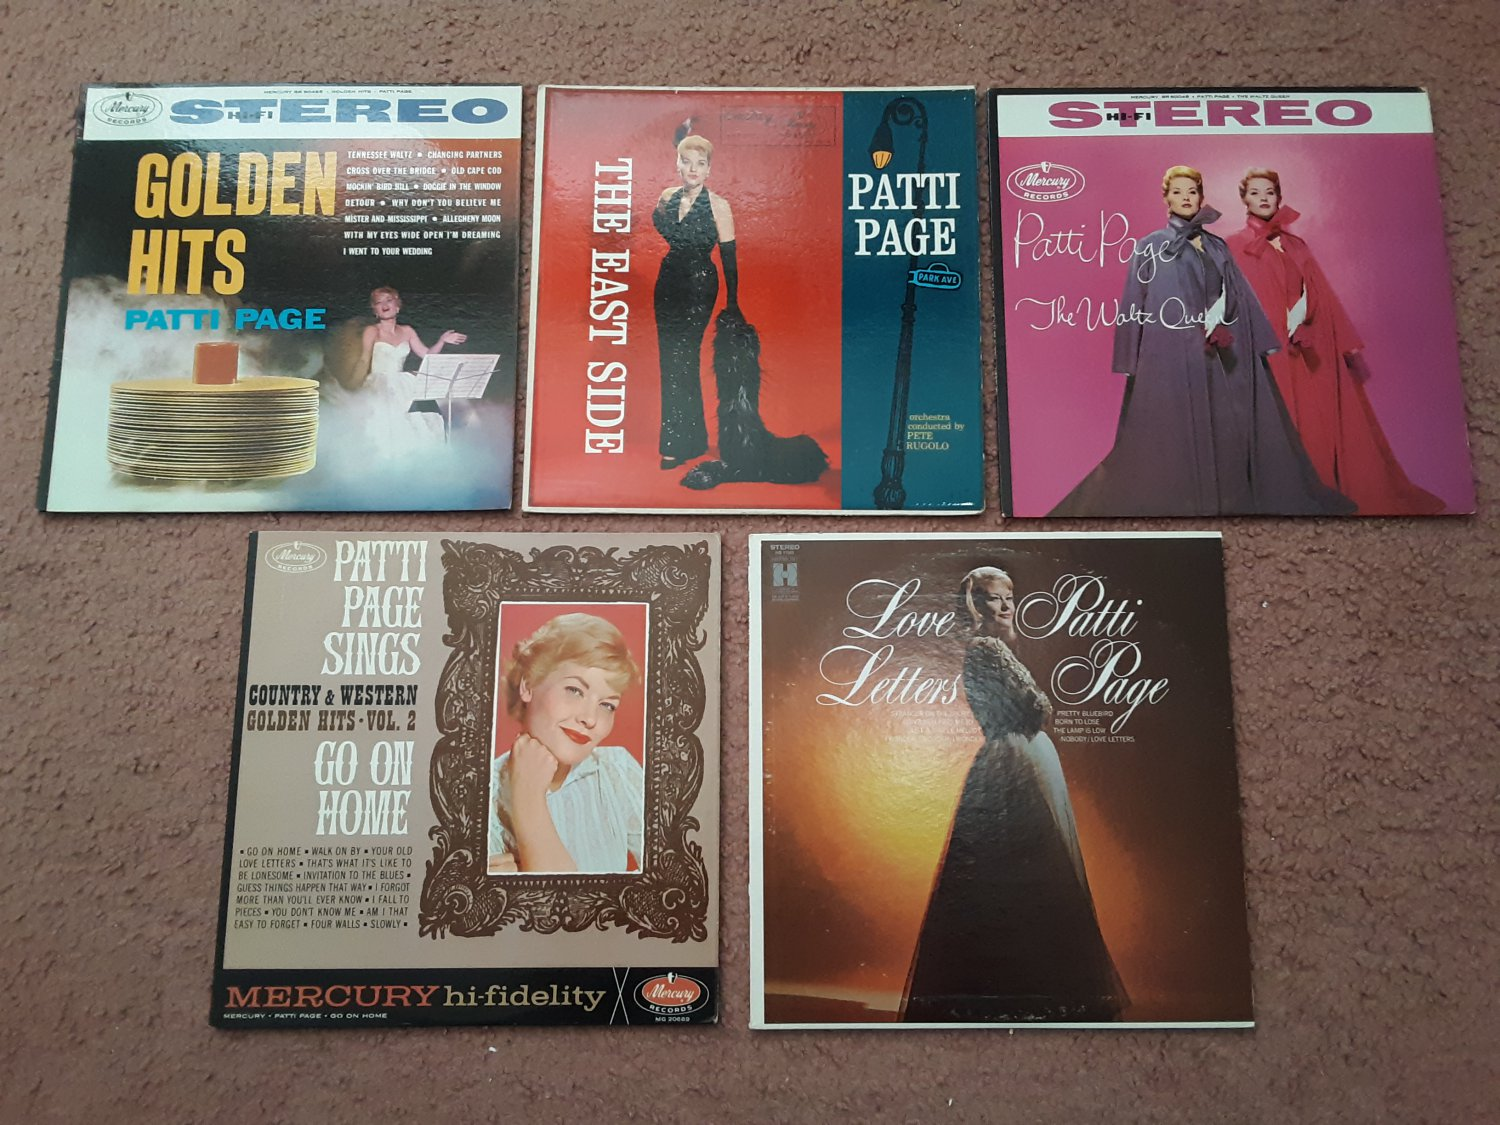 Patti Page - Bundle of 5 Albums! All Her Great Hits In One Bundle! - Circa 1950-60's